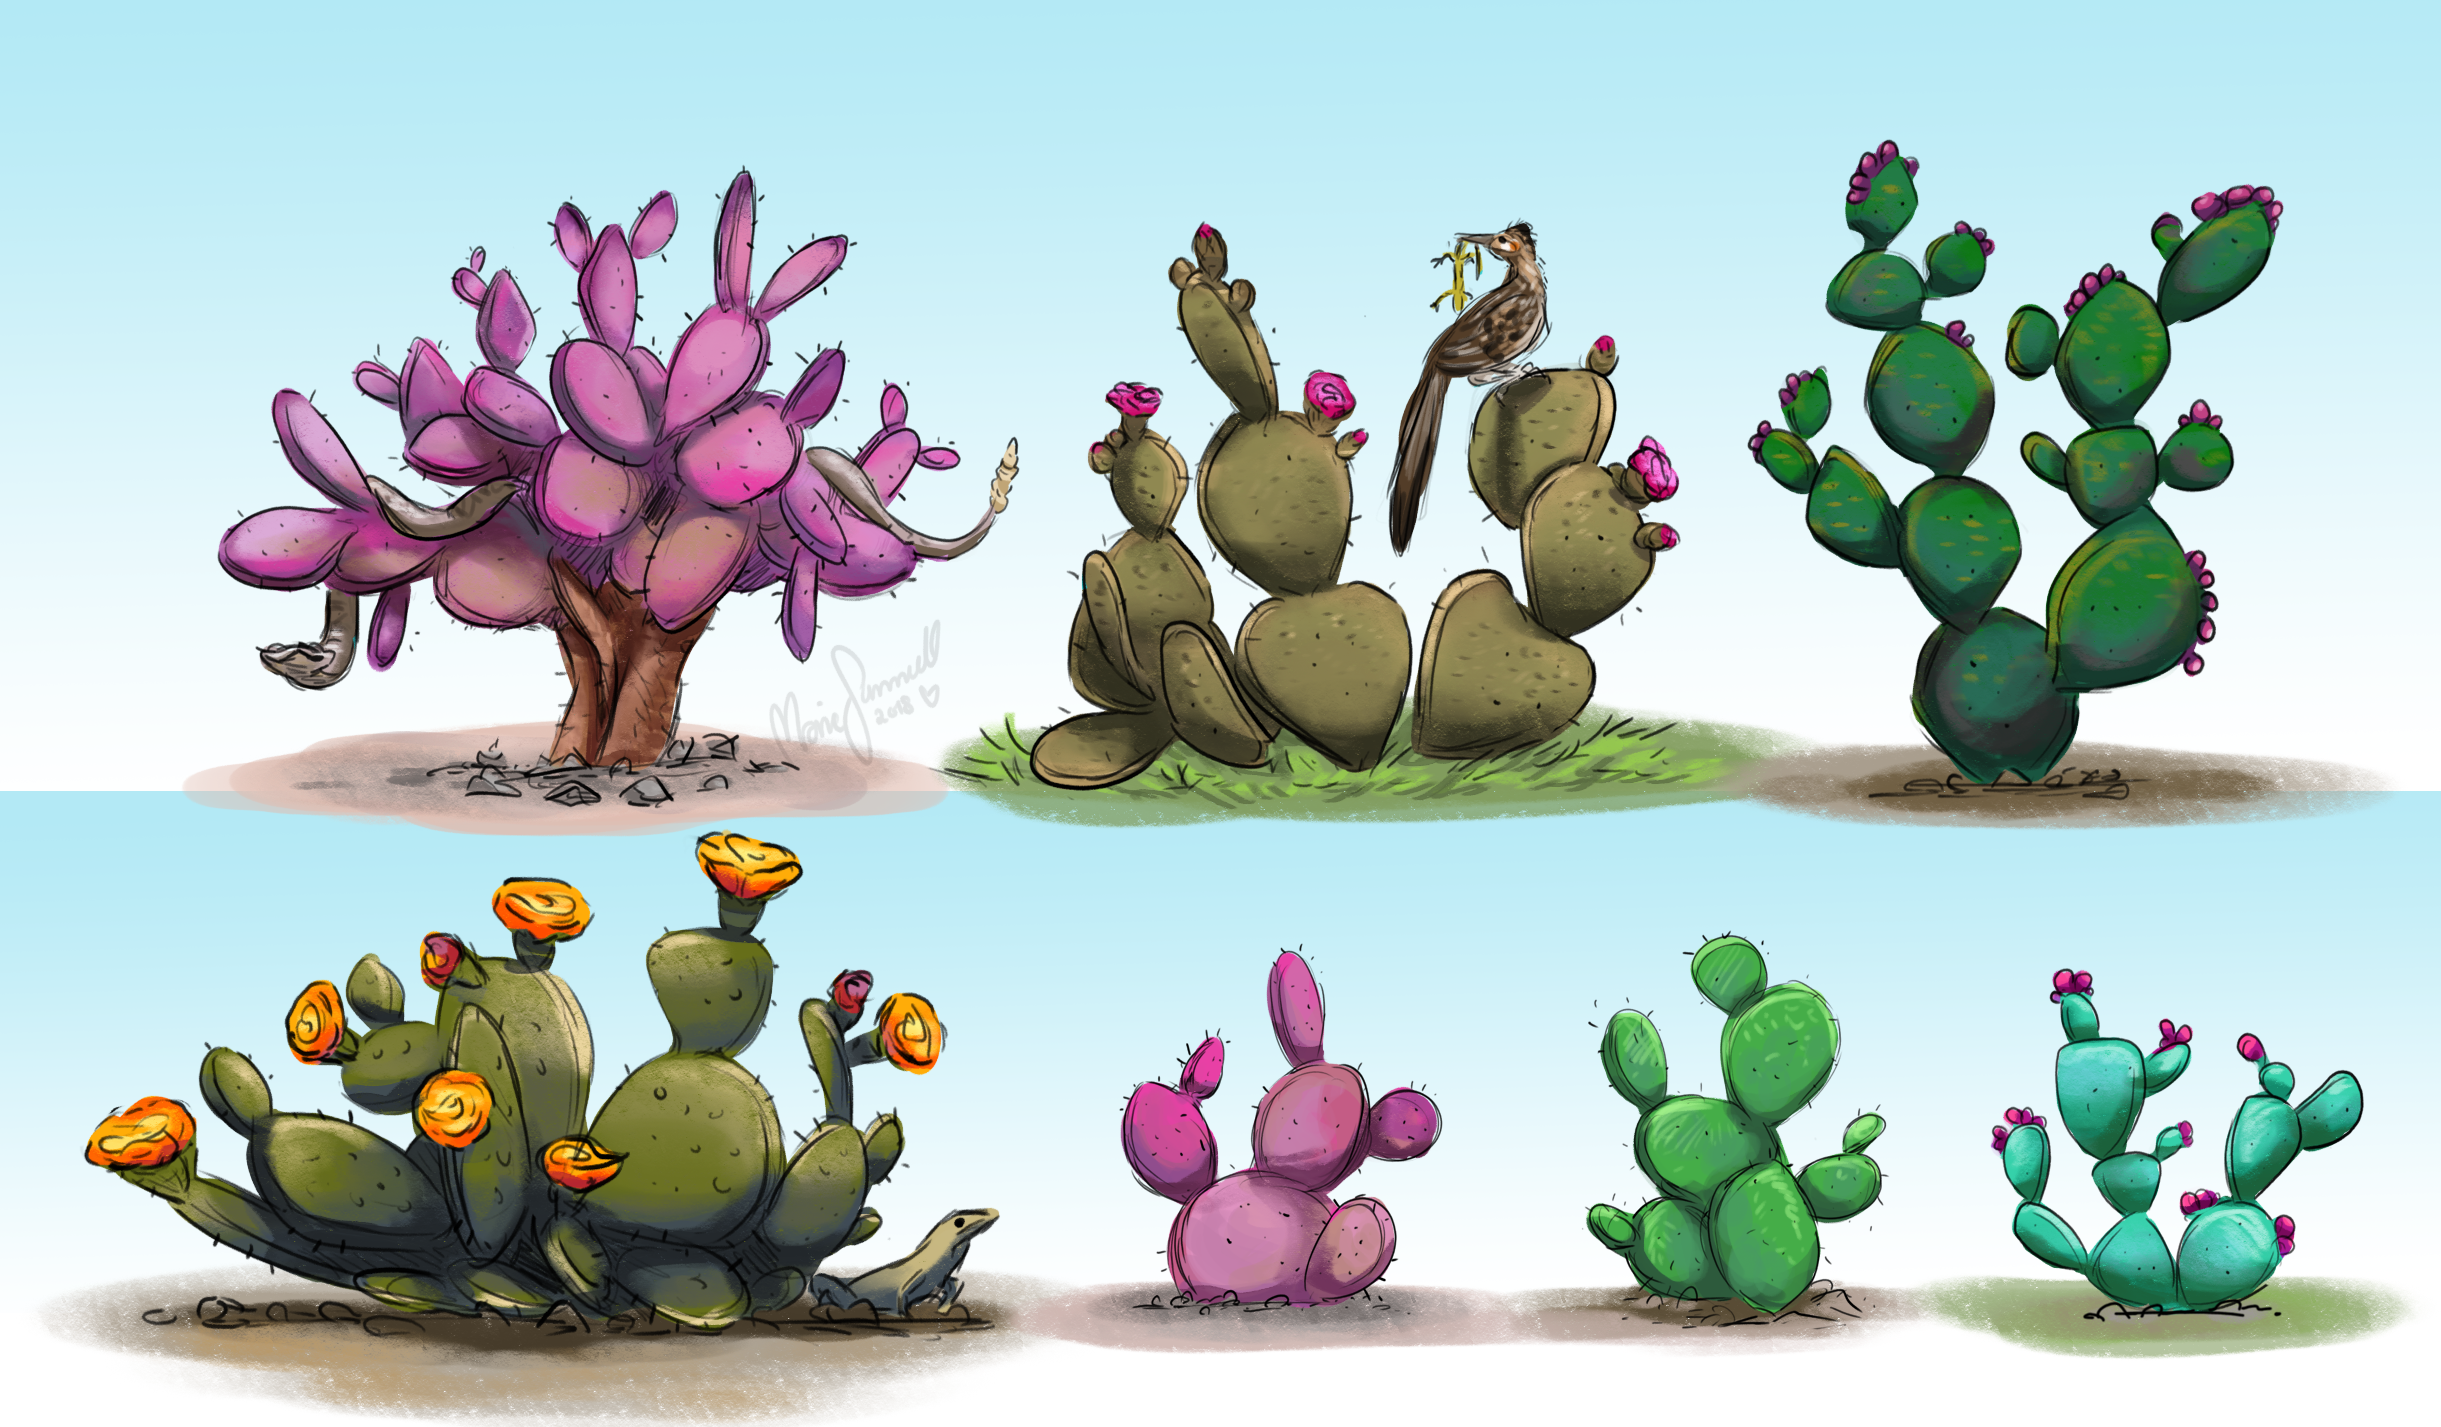 Concept   Different varieties of prickly pears